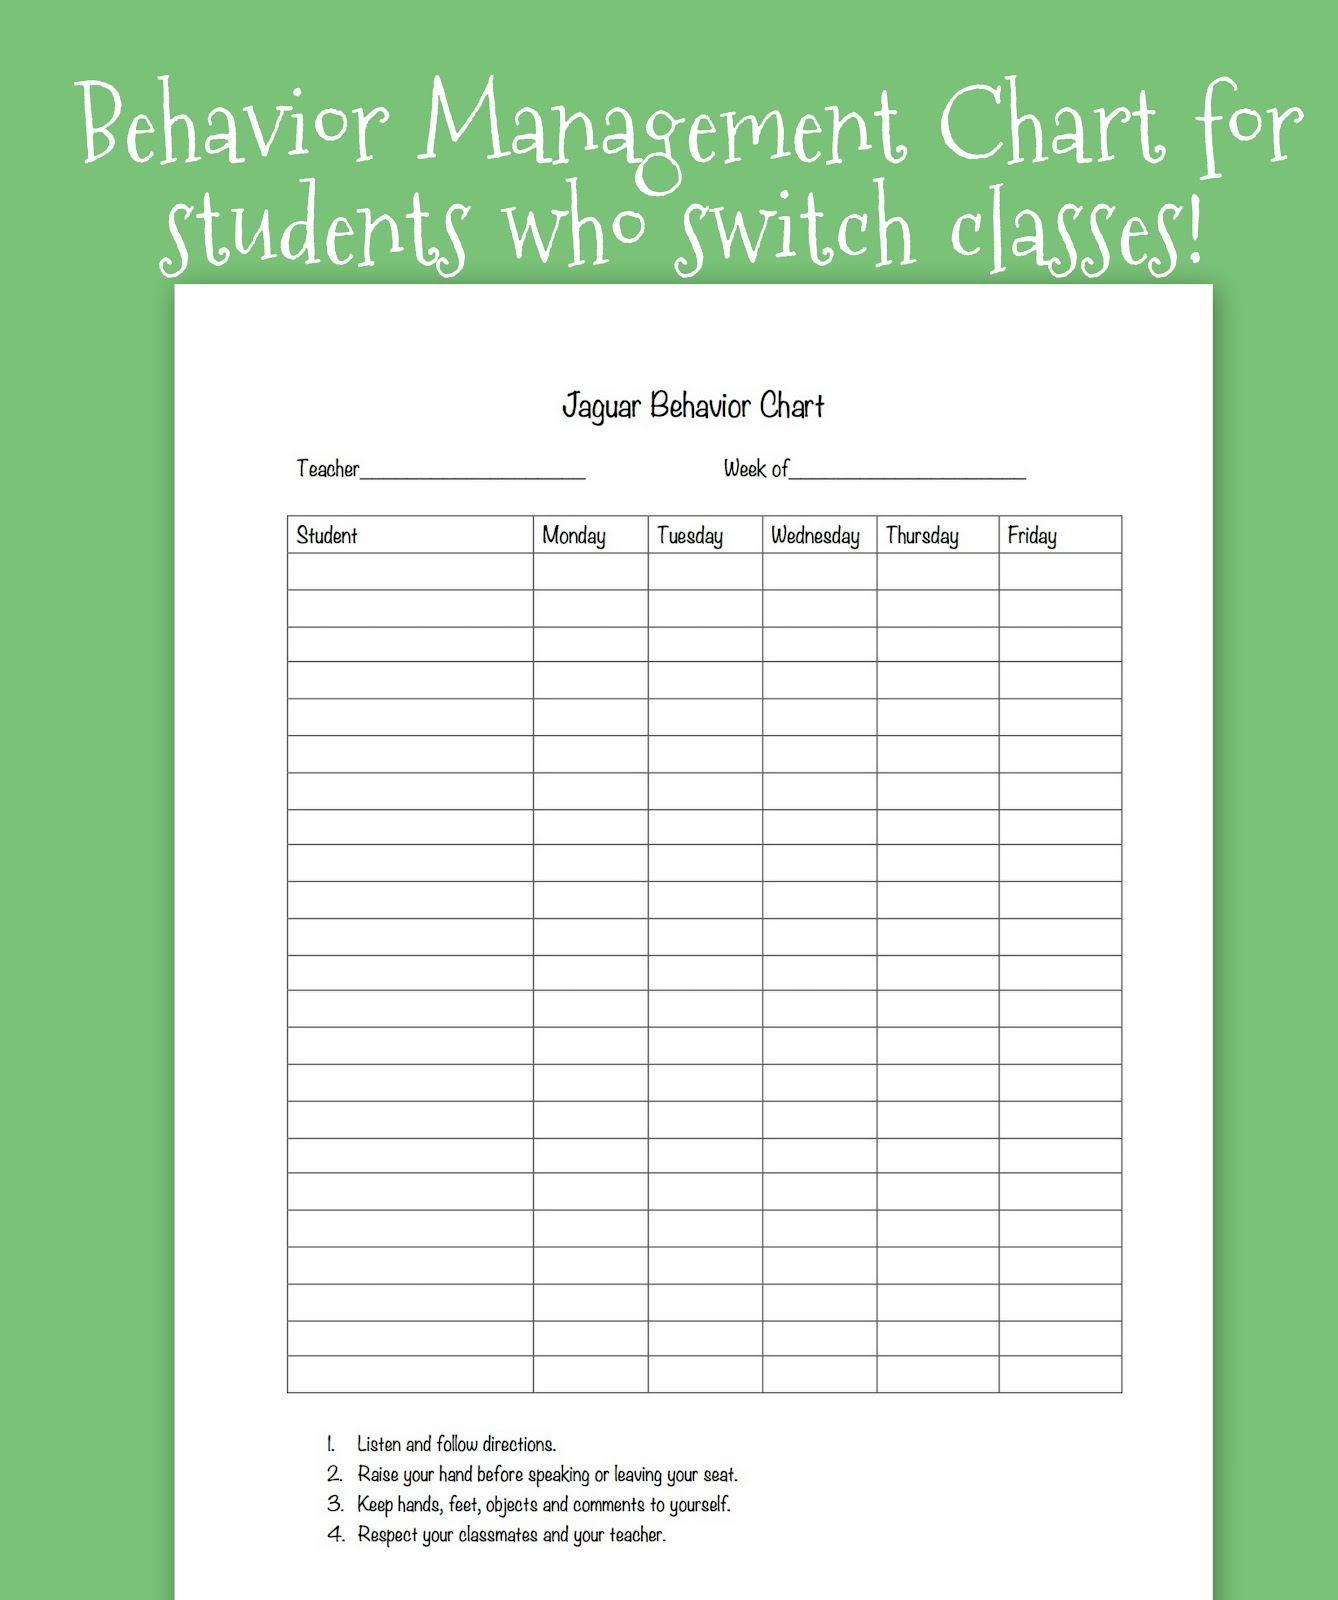 my personal classroom management plan The goals of my classroom management plan are  my personal classroom management  i am particularly interested in sharing my own personal.